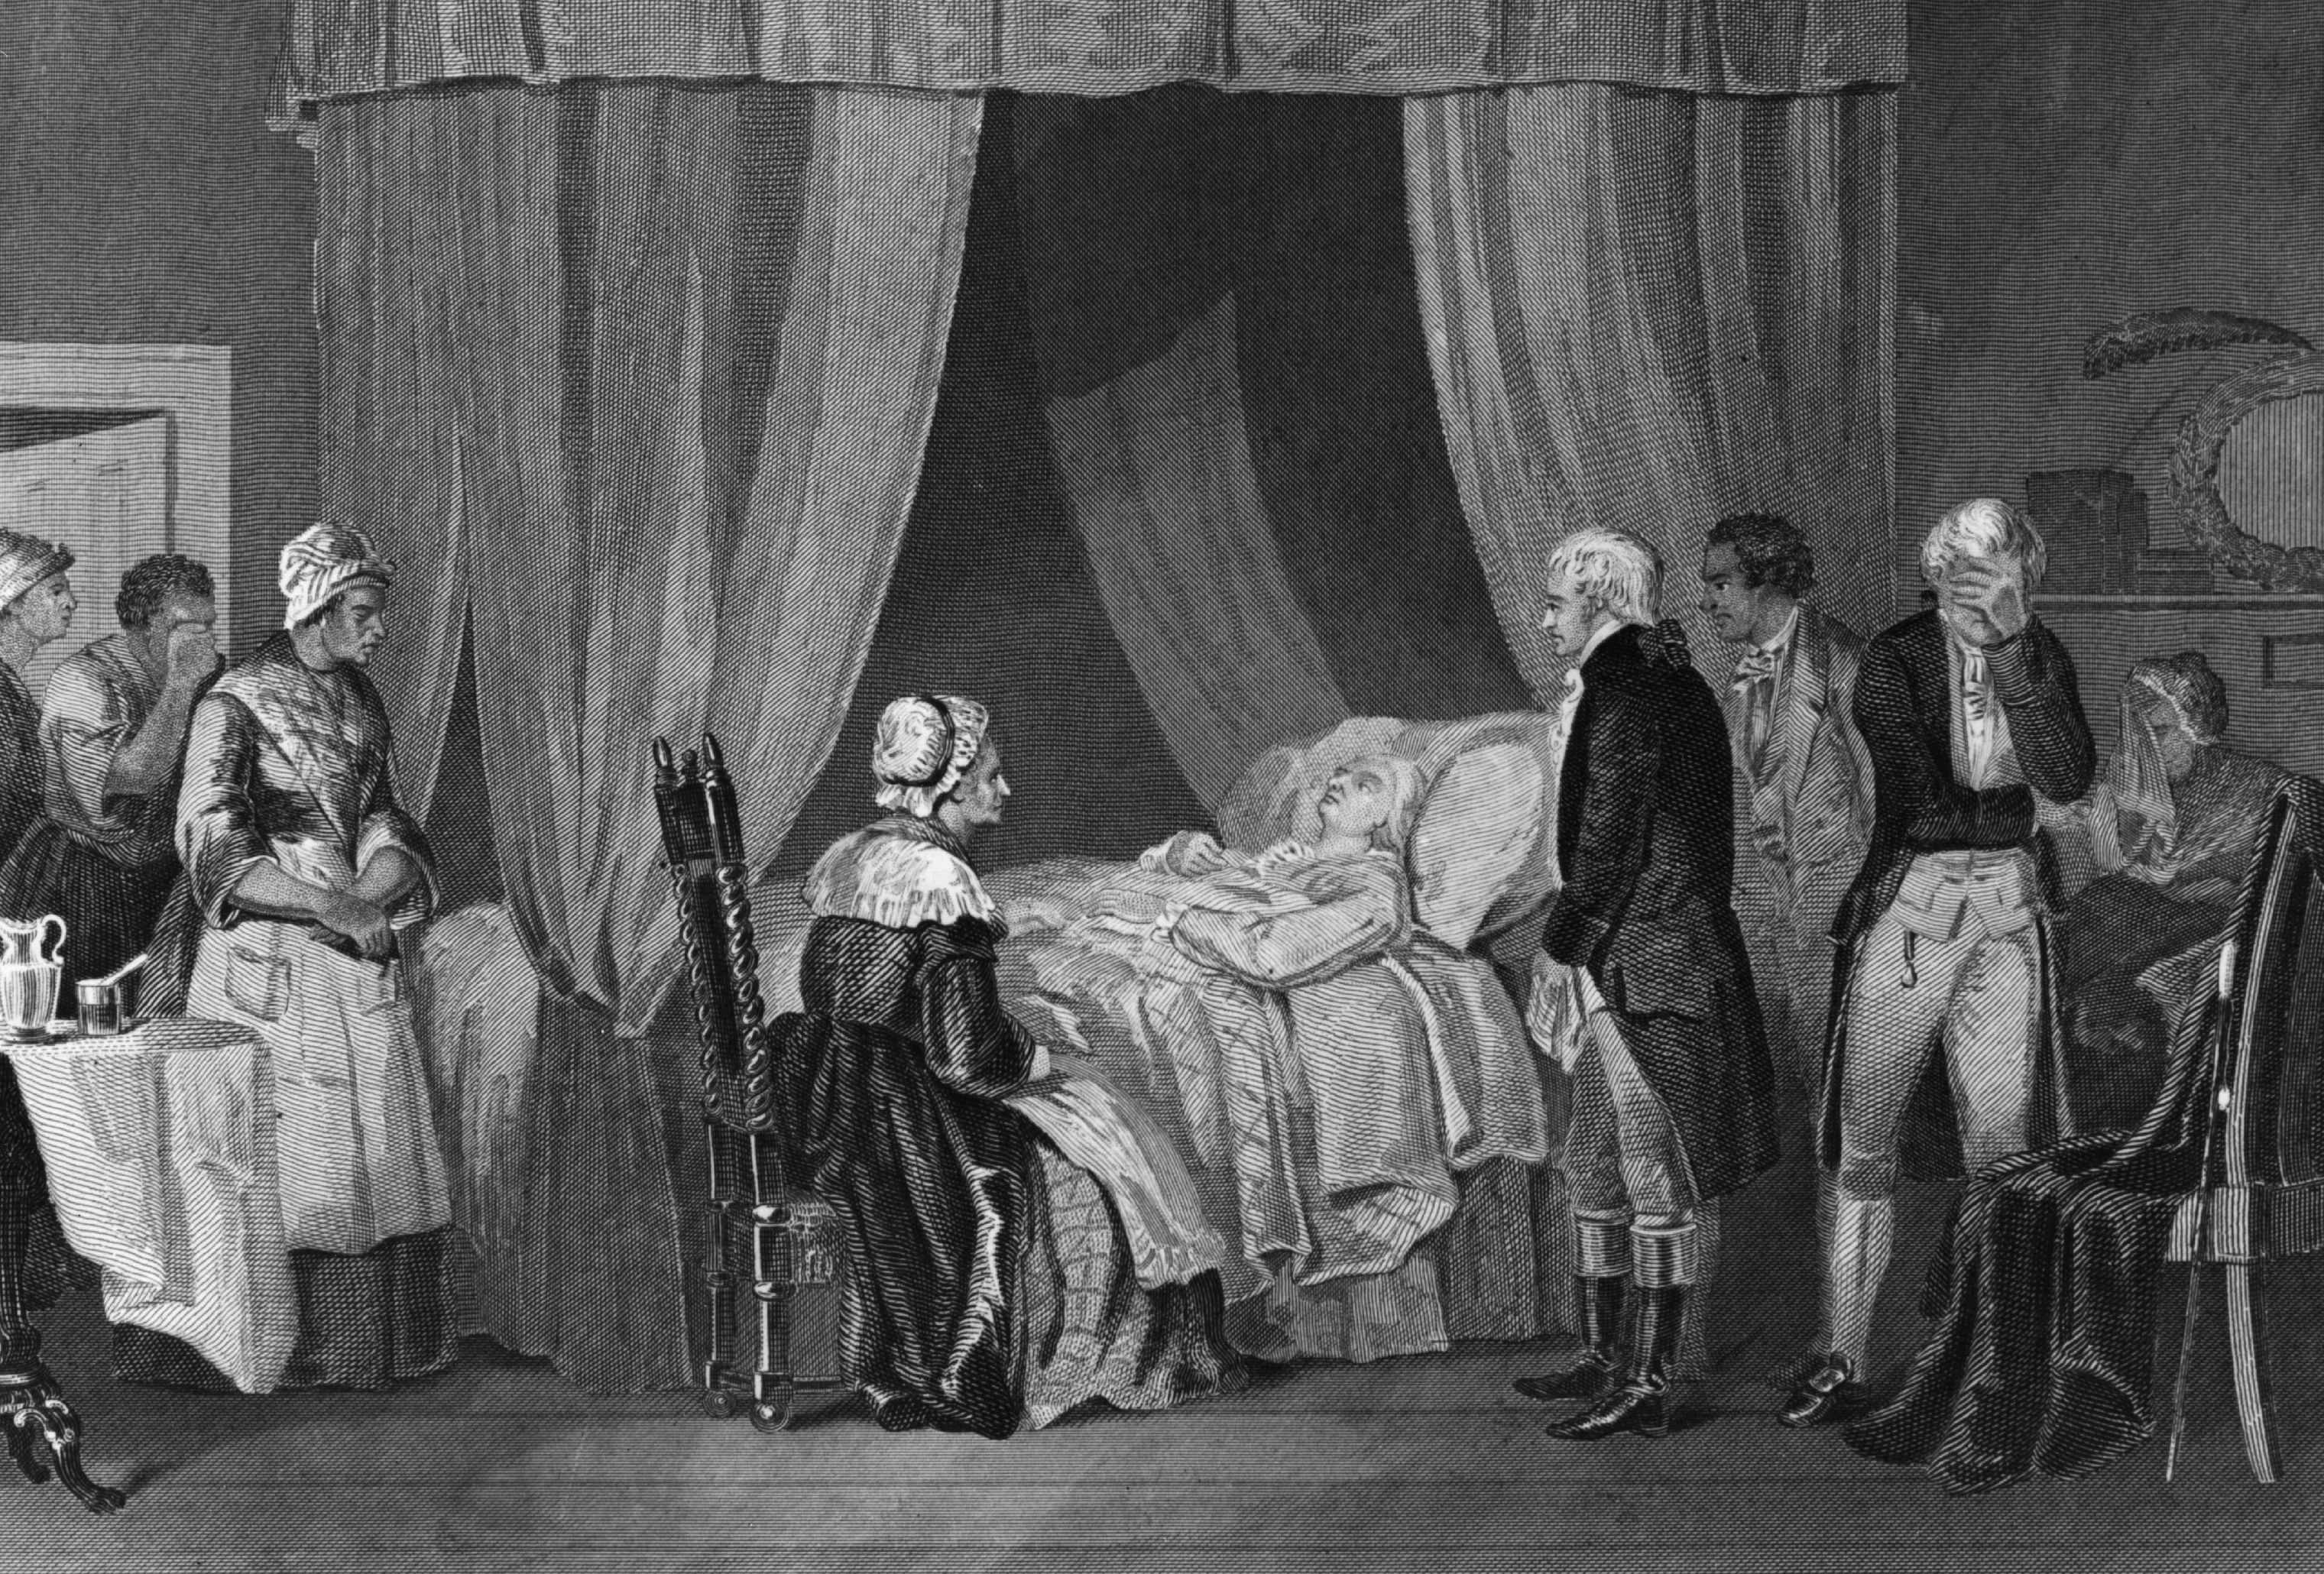 circa 1799:  The deathbed of George Washington (1732 - 1799), the 1st President of the United States of America (1789 - 1797). (Photo by Hulton Archive/Getty Images)